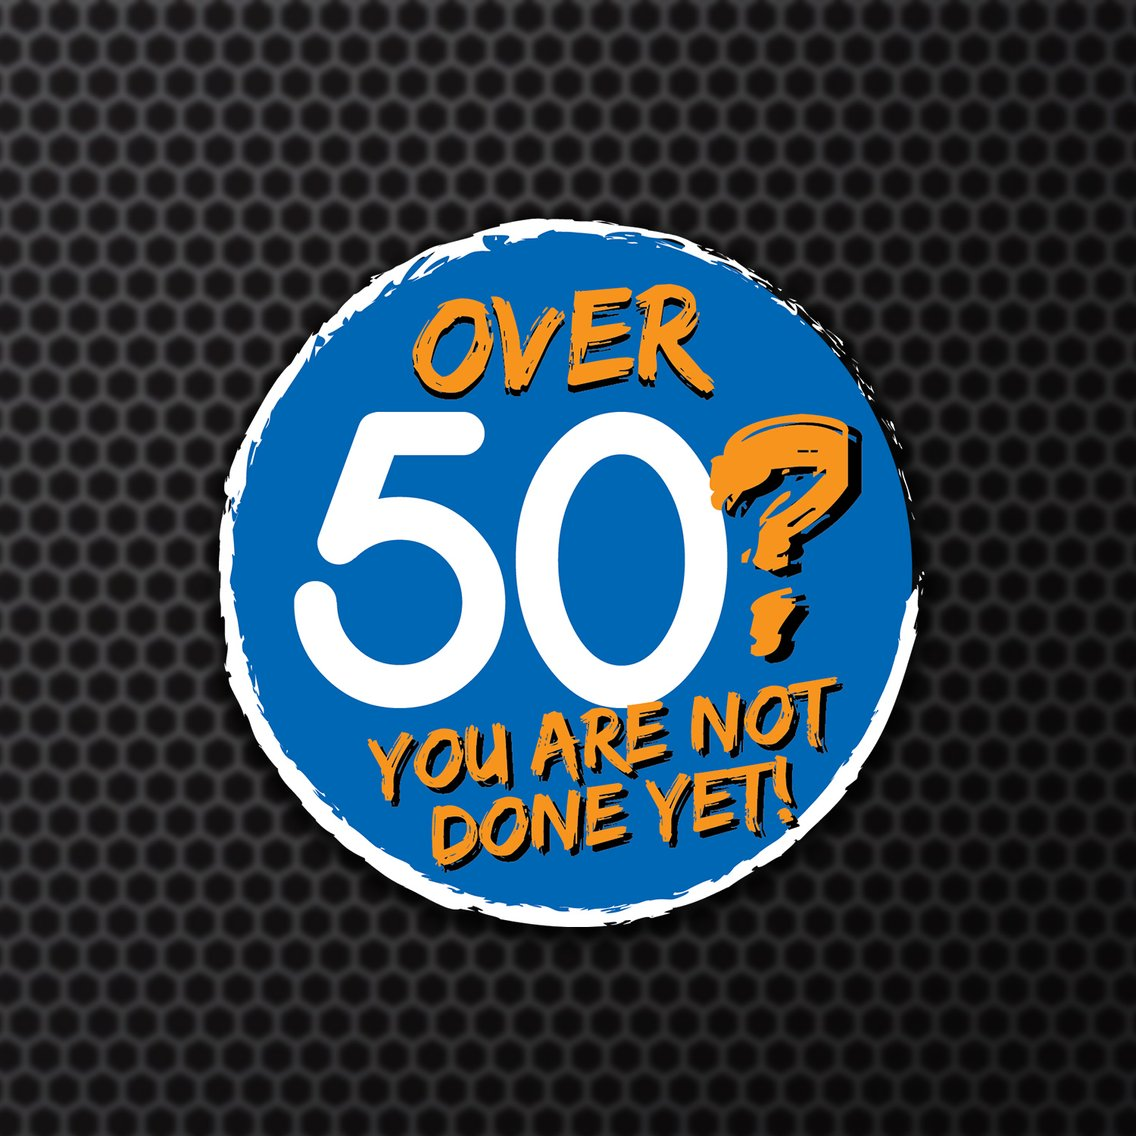 Over 50? You Are Not Done Yet! - Cover Image